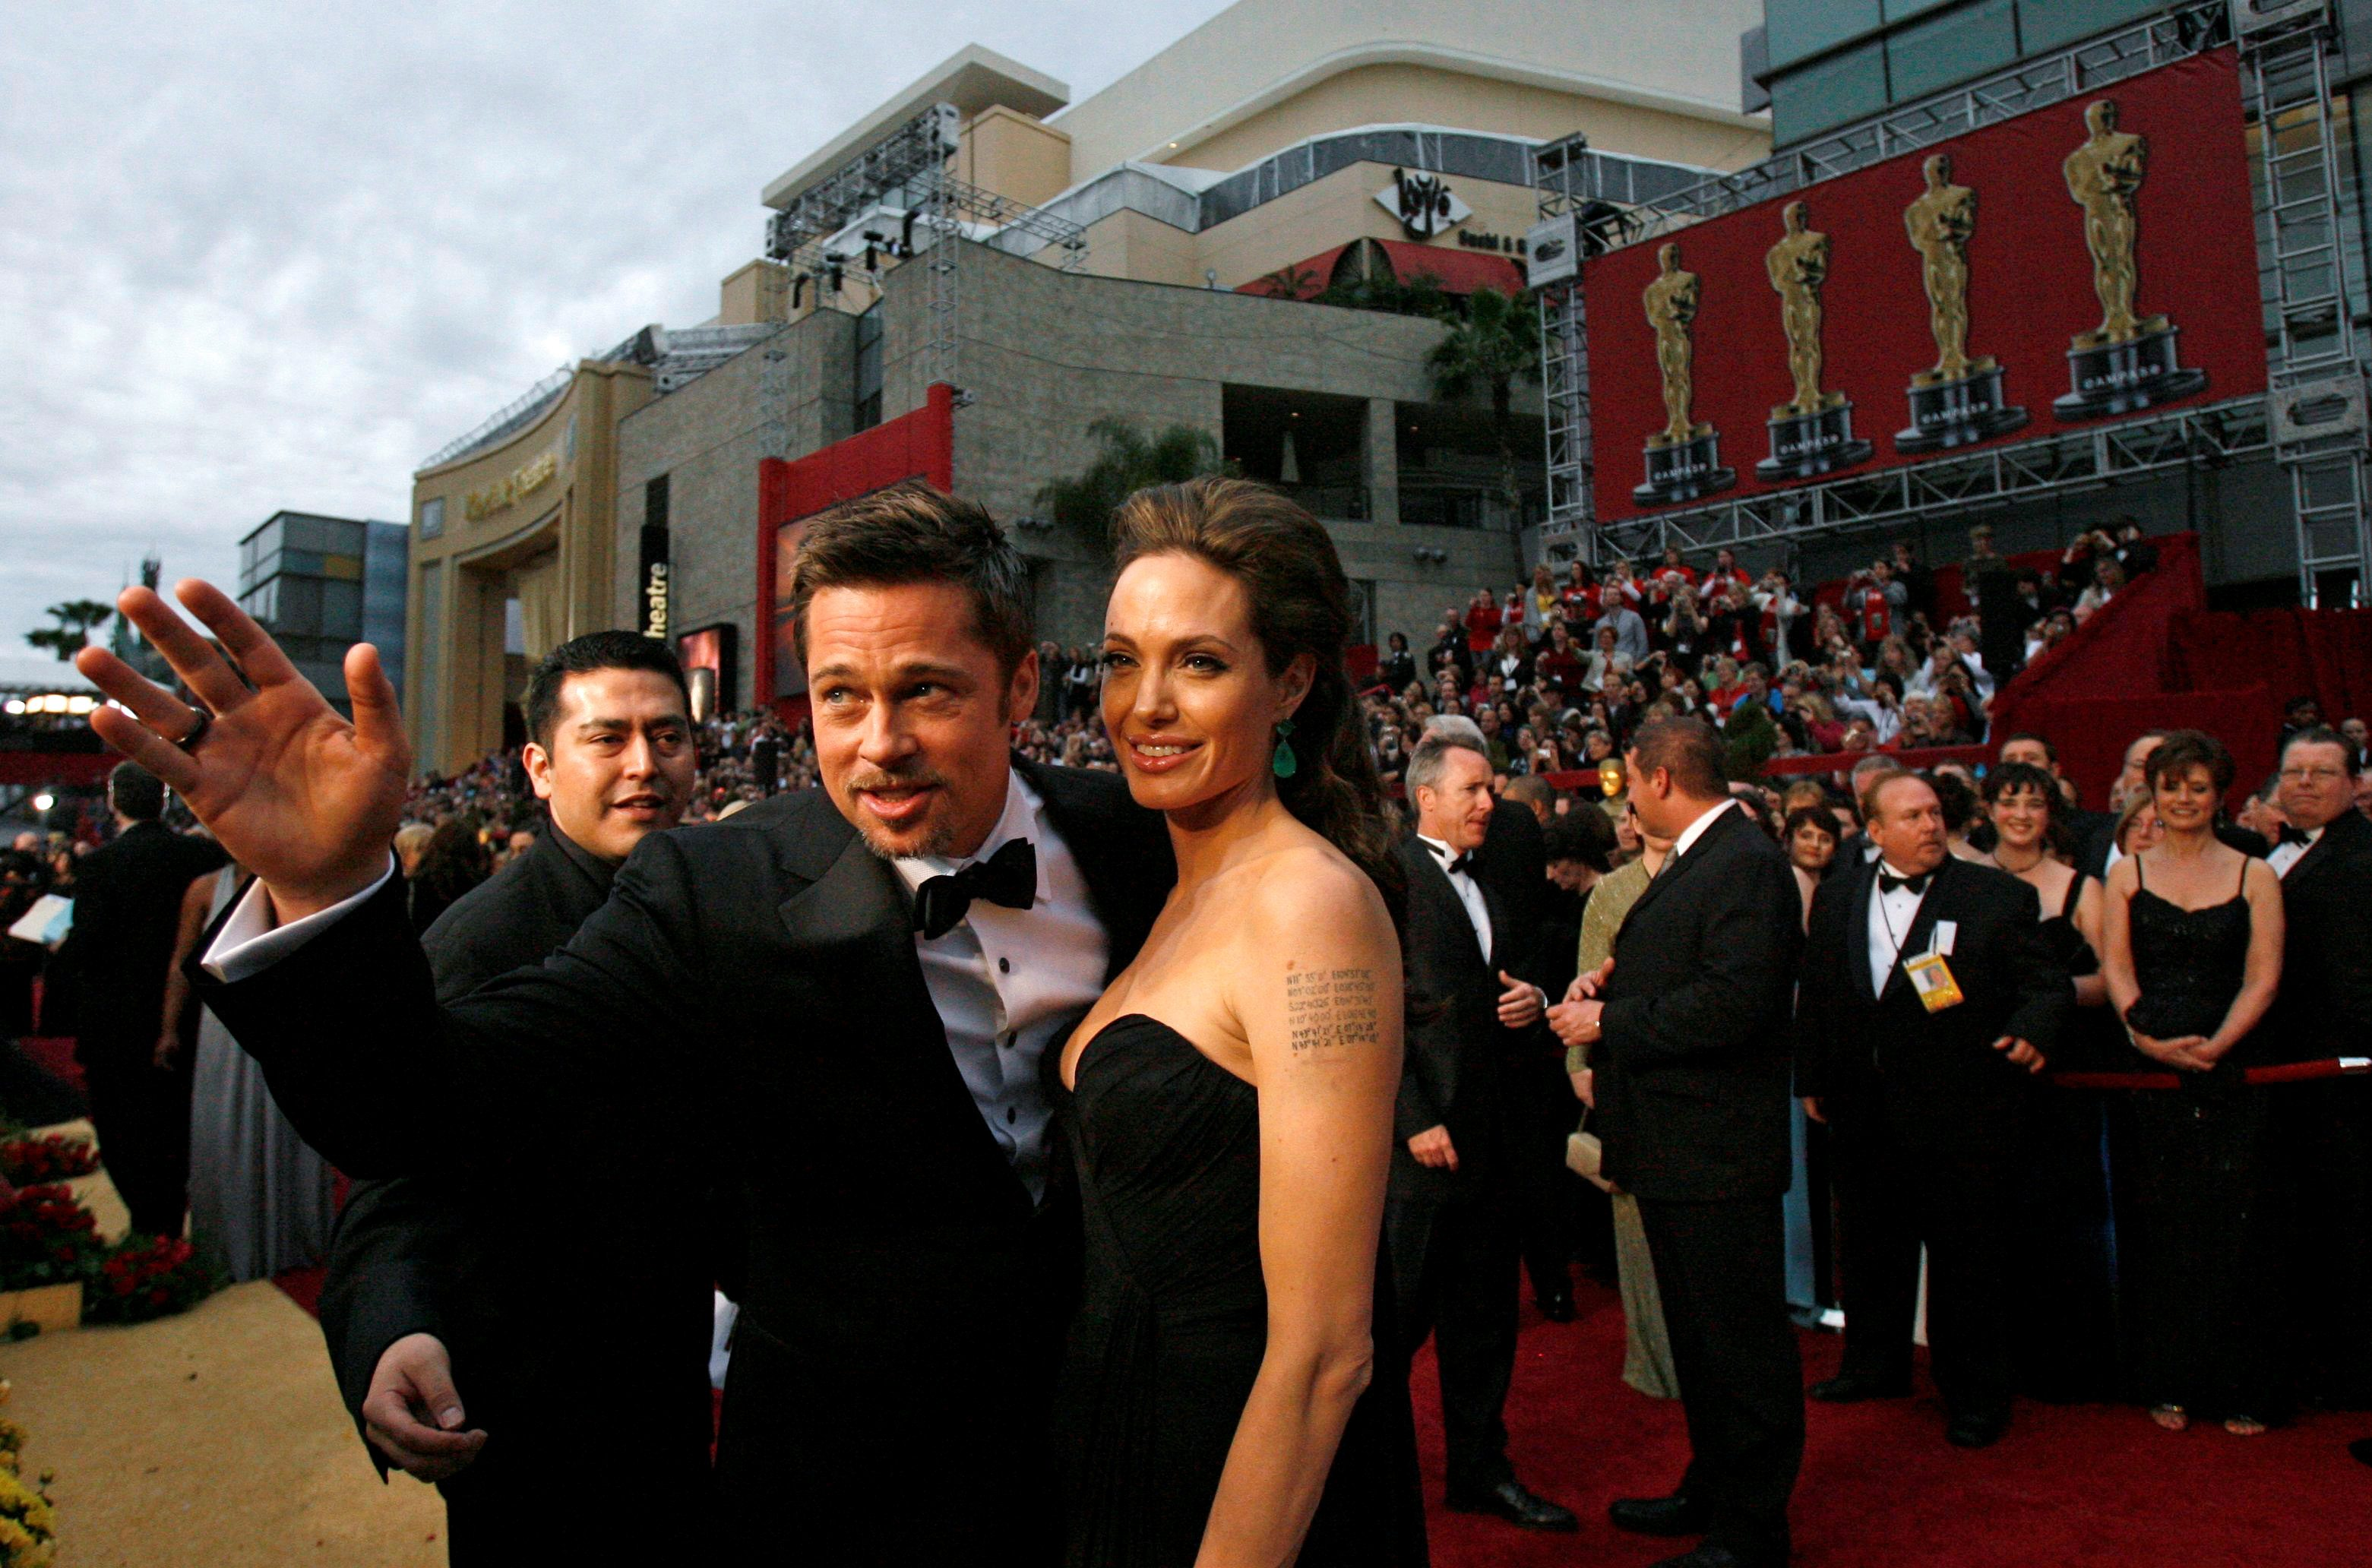 Actors Brad Pitt and Angelina Jolie arrive at the 81st Academy Awards in Hollywood, California February 22, 2009.  REUTERS/Mario Anzuoni/File Photo     TPX IMAGES OF THE DAY